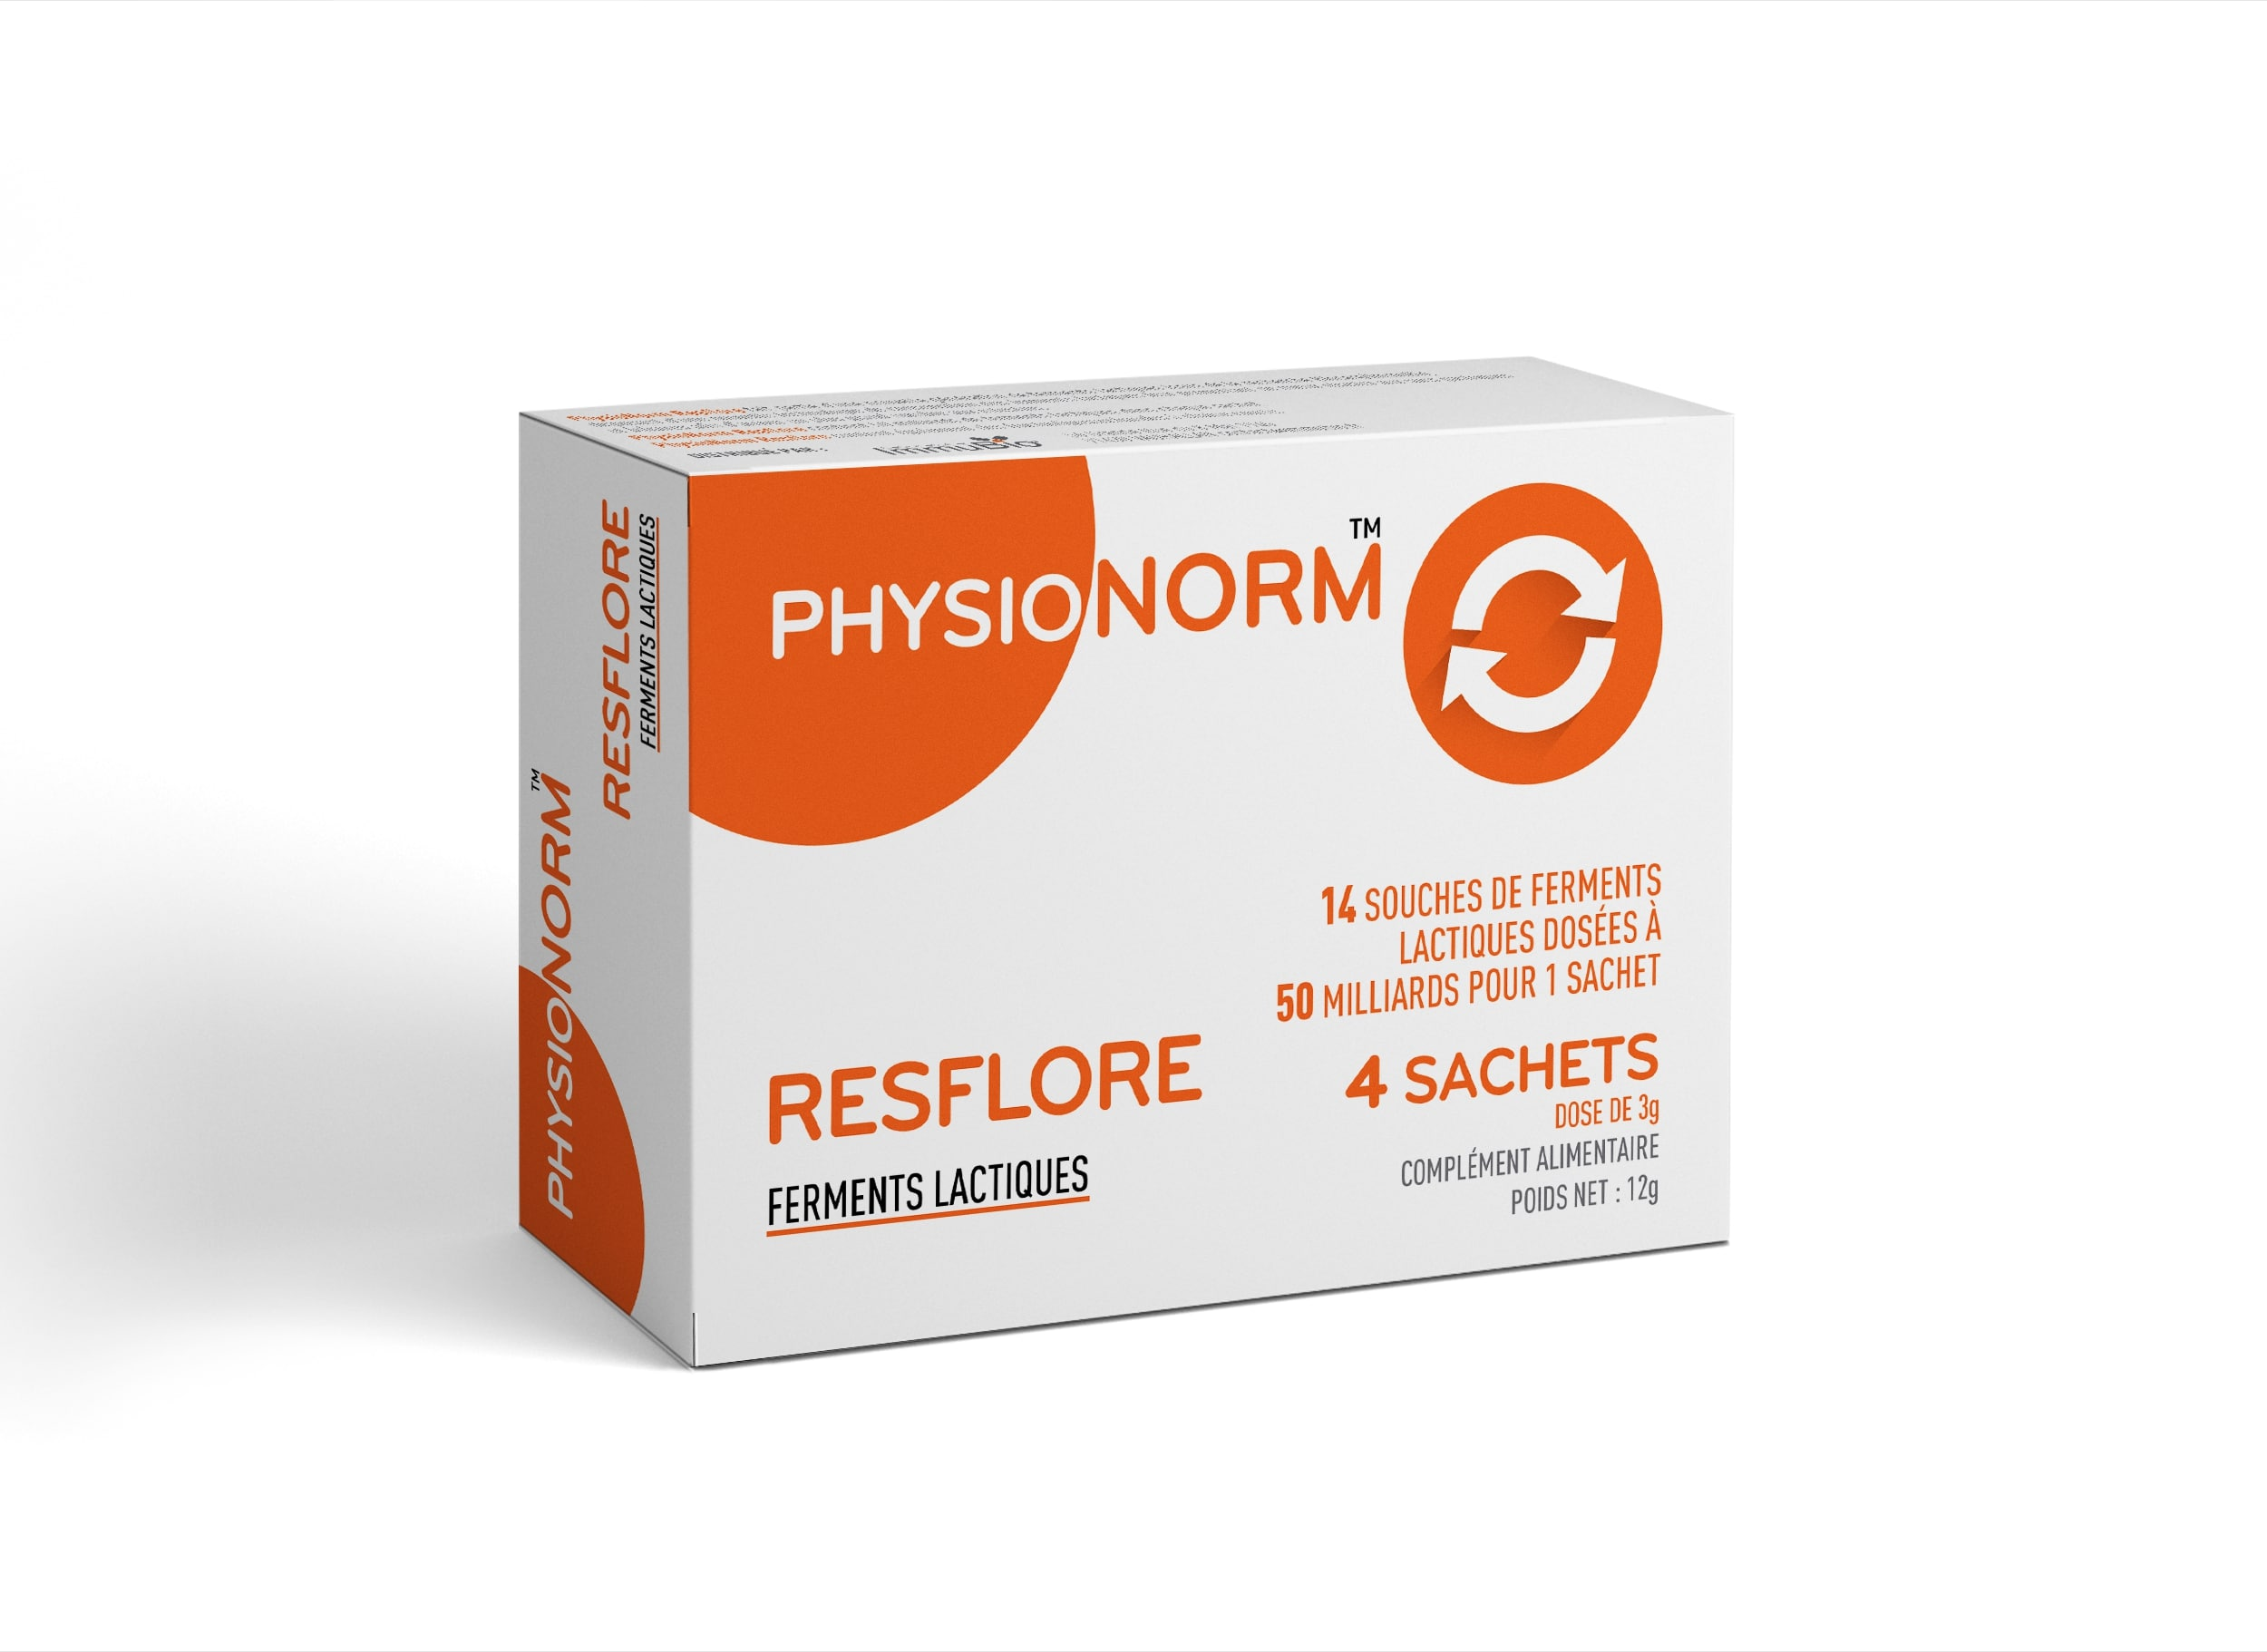 PHYSIONORM RESFLORE